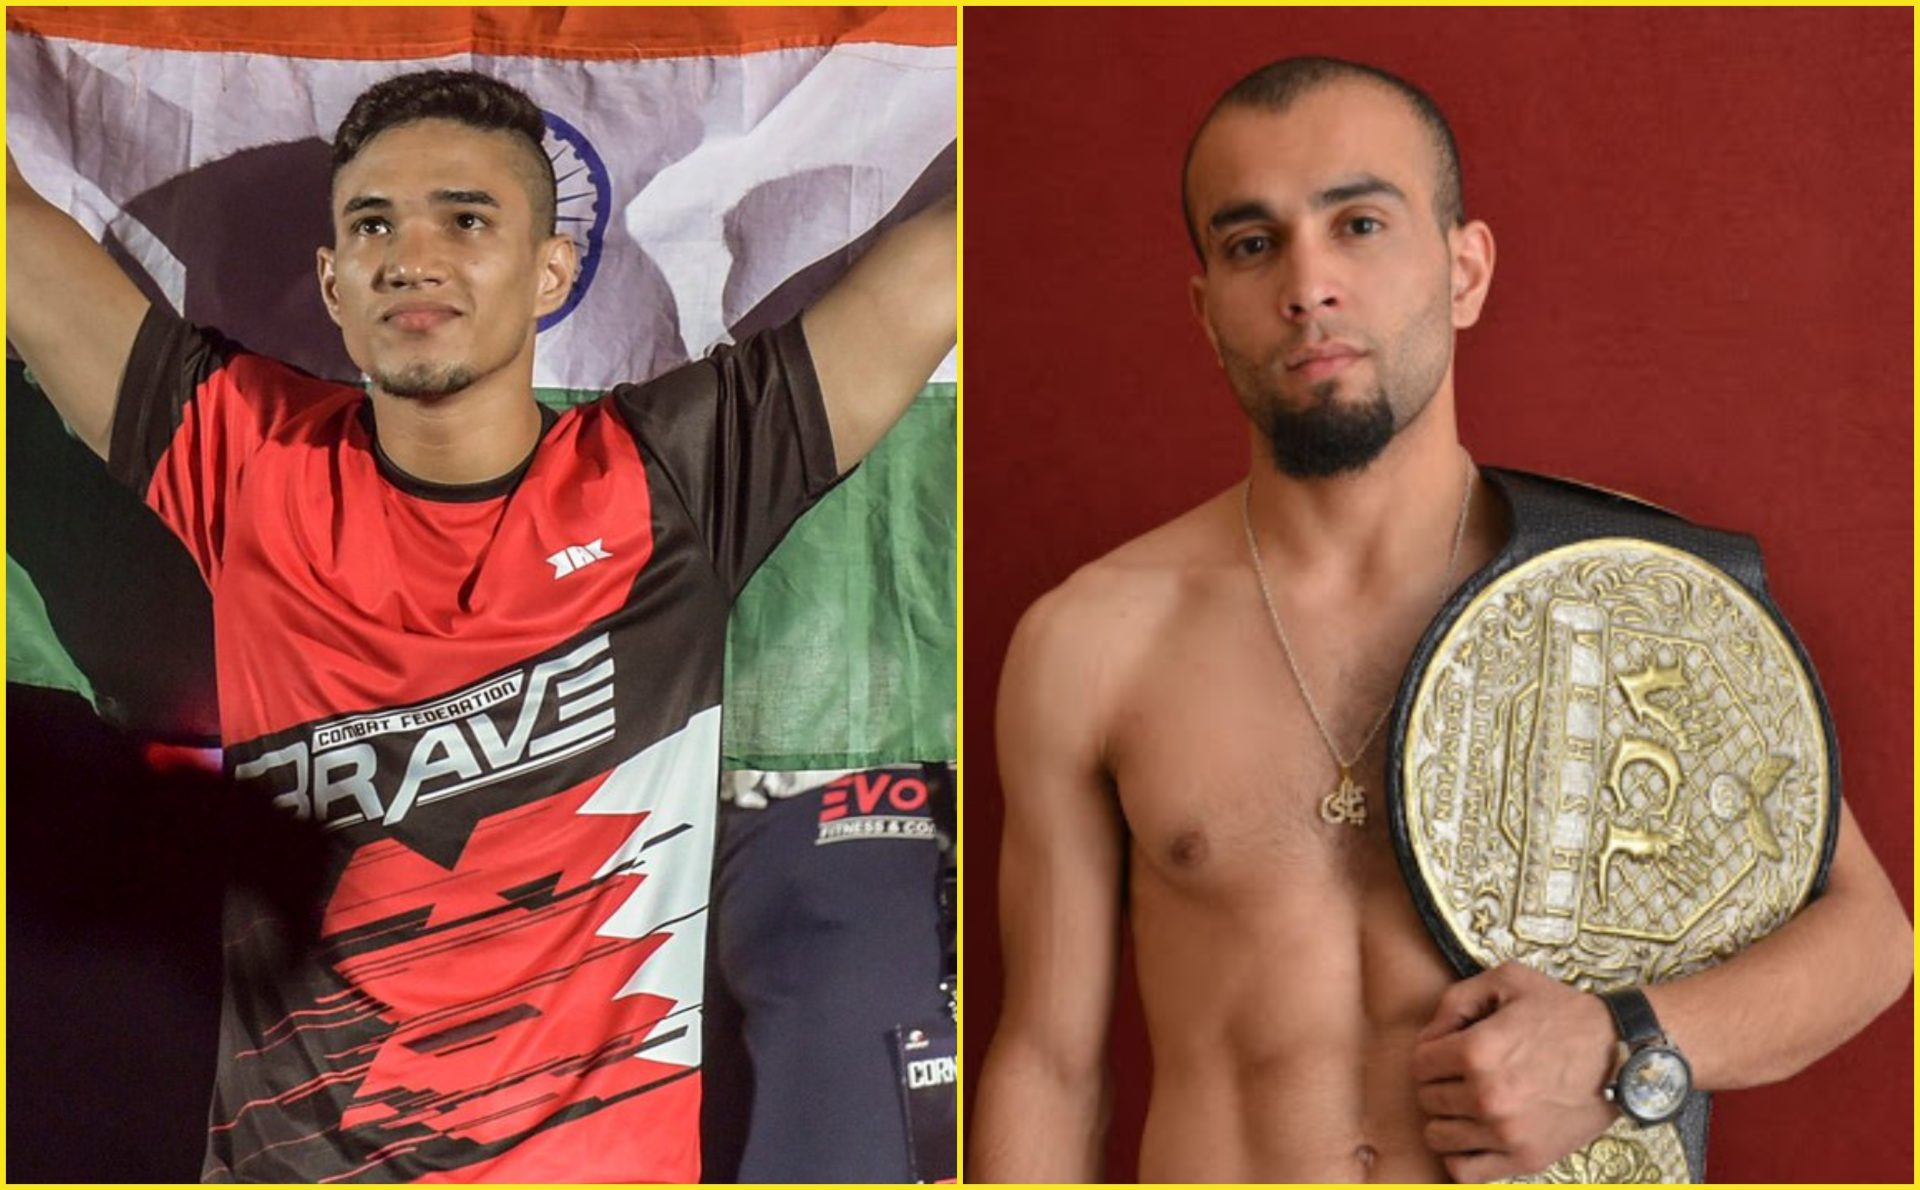 Mohammed Farhad to fight Pakistan's Uloomi Karim at BRAVE CF 47 on March 11 - Mohammed Farhad